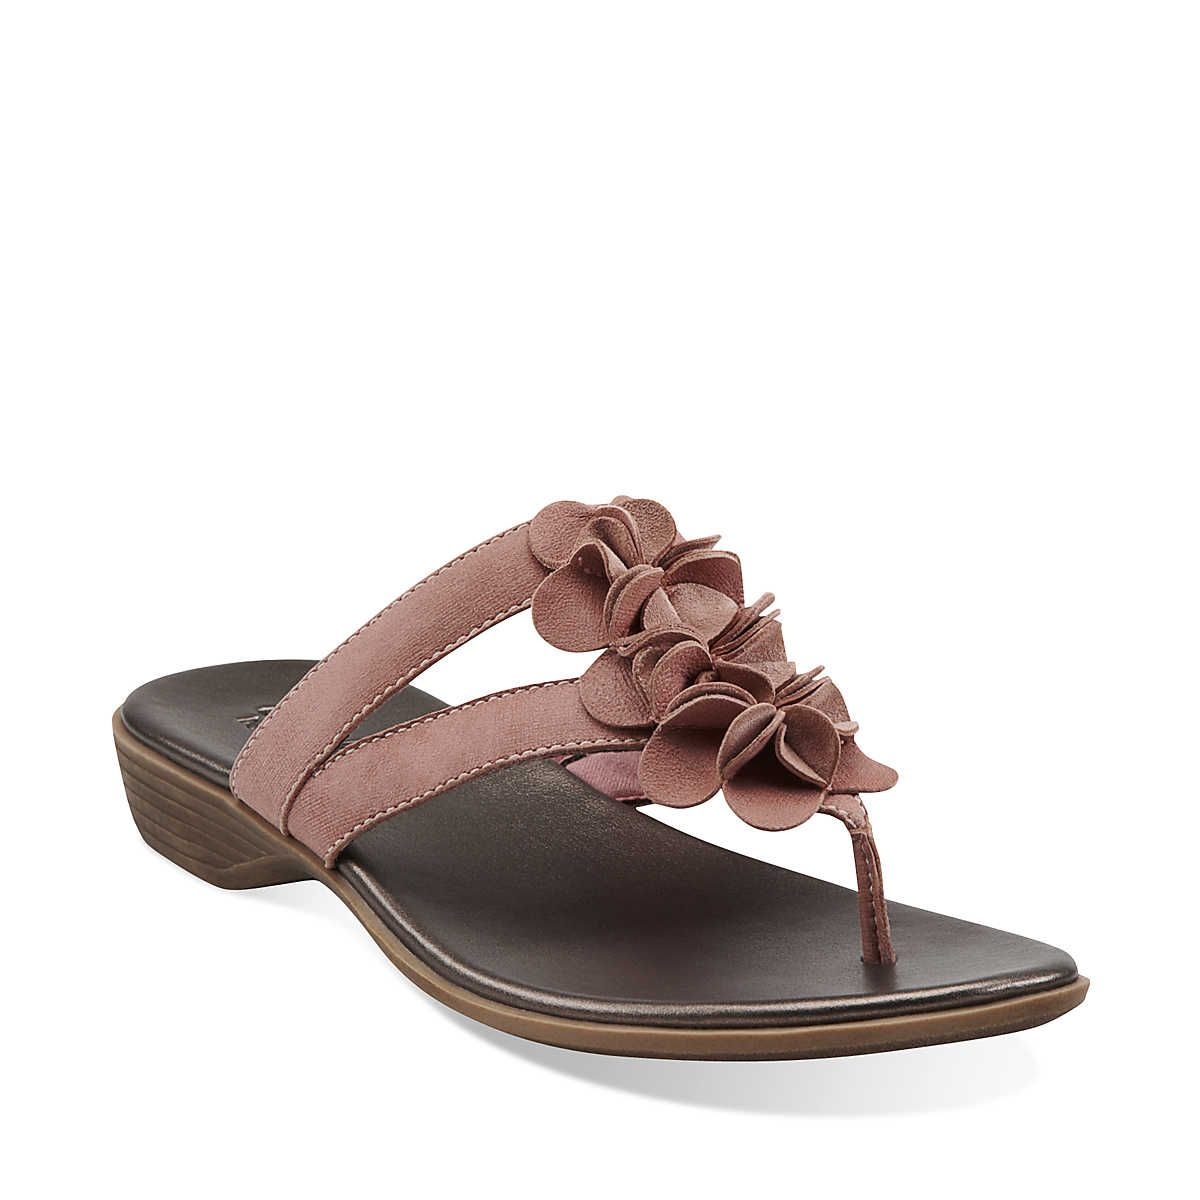 a5cc217aaaf Dusk Rio in Rose Leather - Womens Sandals from Clarks